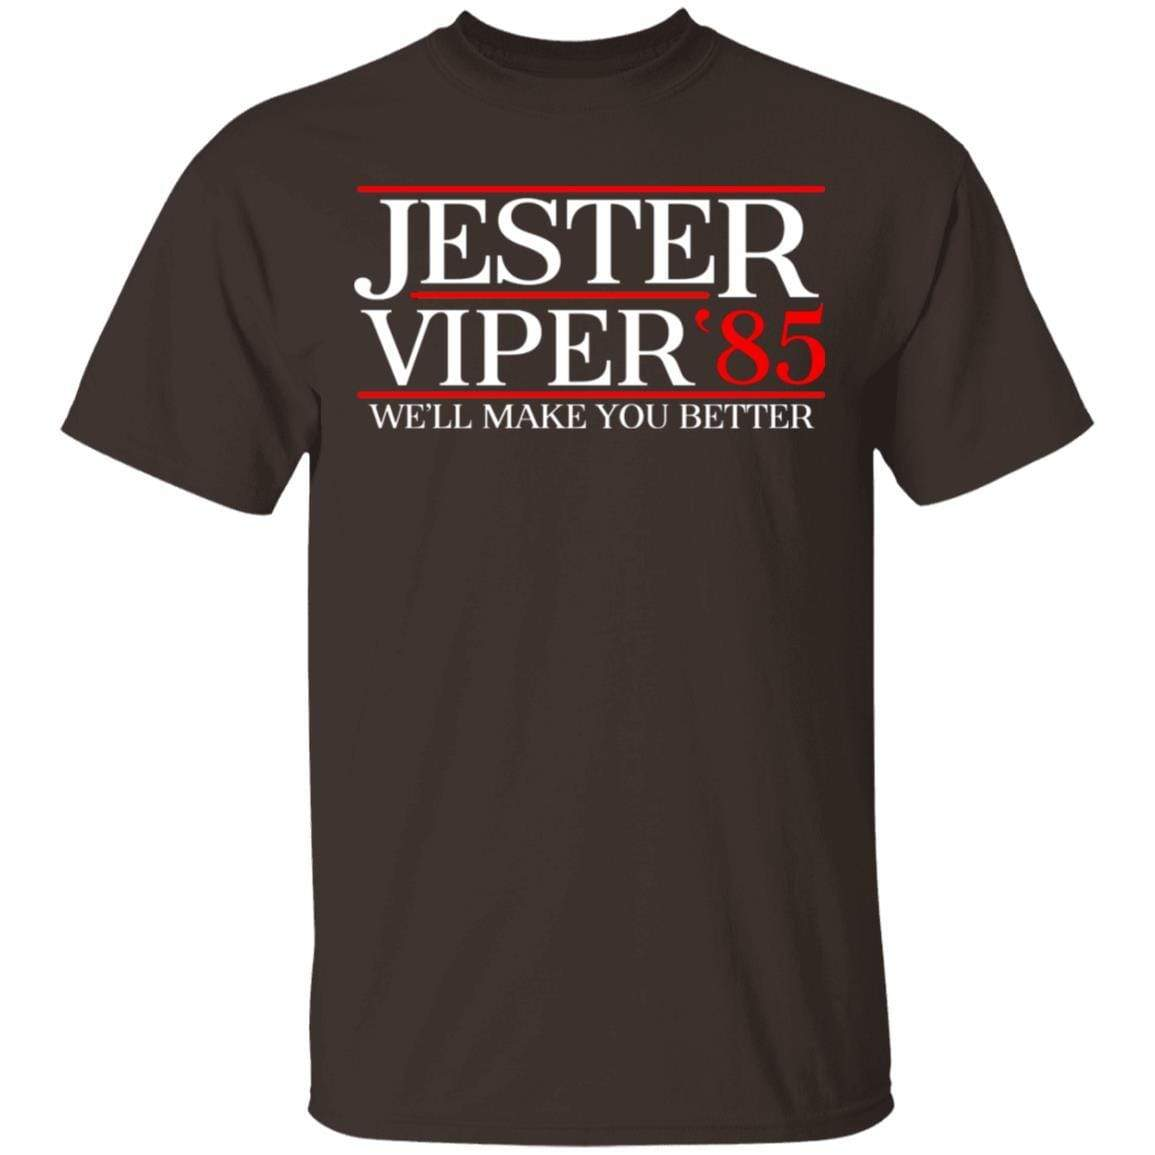 Danger Zone Jester Viper 85' We'll Make You Better T-Shirts, Hoodies 1049-9956-92229577-48152 - Tee Ript